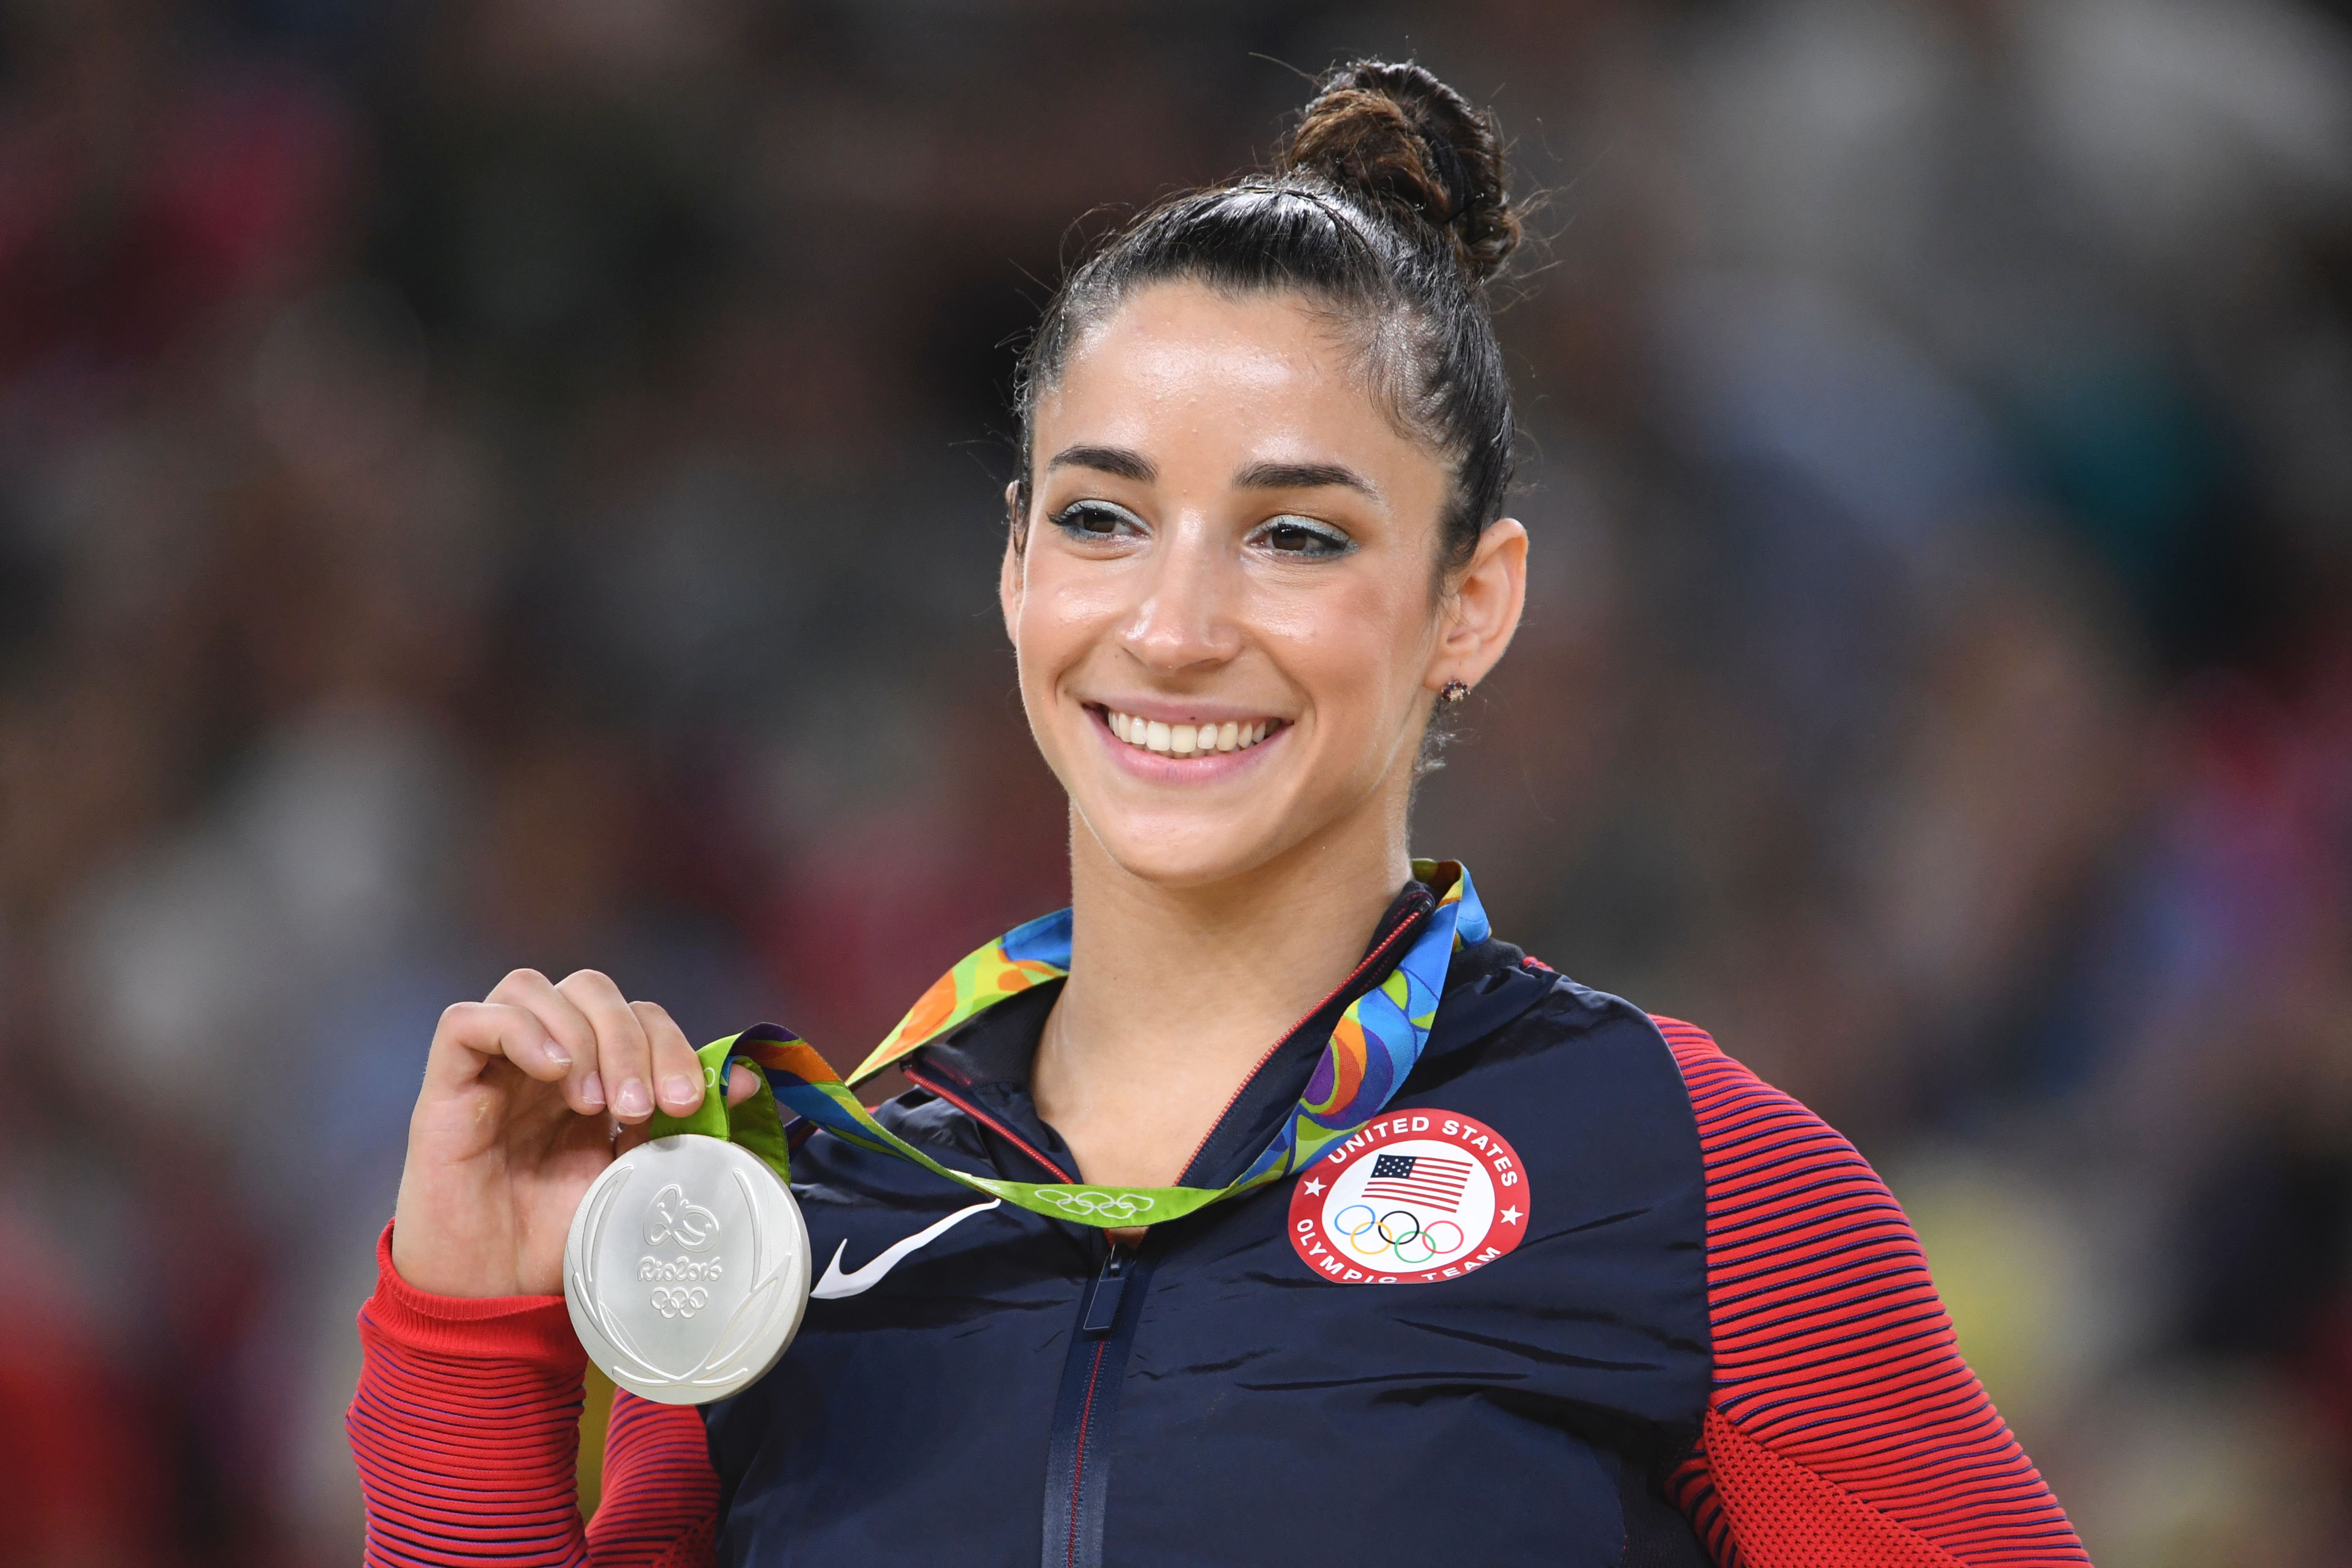 US gymnast Alexandra Raisman celebrates on the podium of the women's floor event final of the Artistic Gymnastics at the Olympic Arena during the Rio 2016 Olympic Games in Rio de Janeiro on August 16, 2016. / AFP / Toshifumi KITAMURA        (Photo credit should read TOSHIFUMI KITAMURA/AFP/Getty Images)